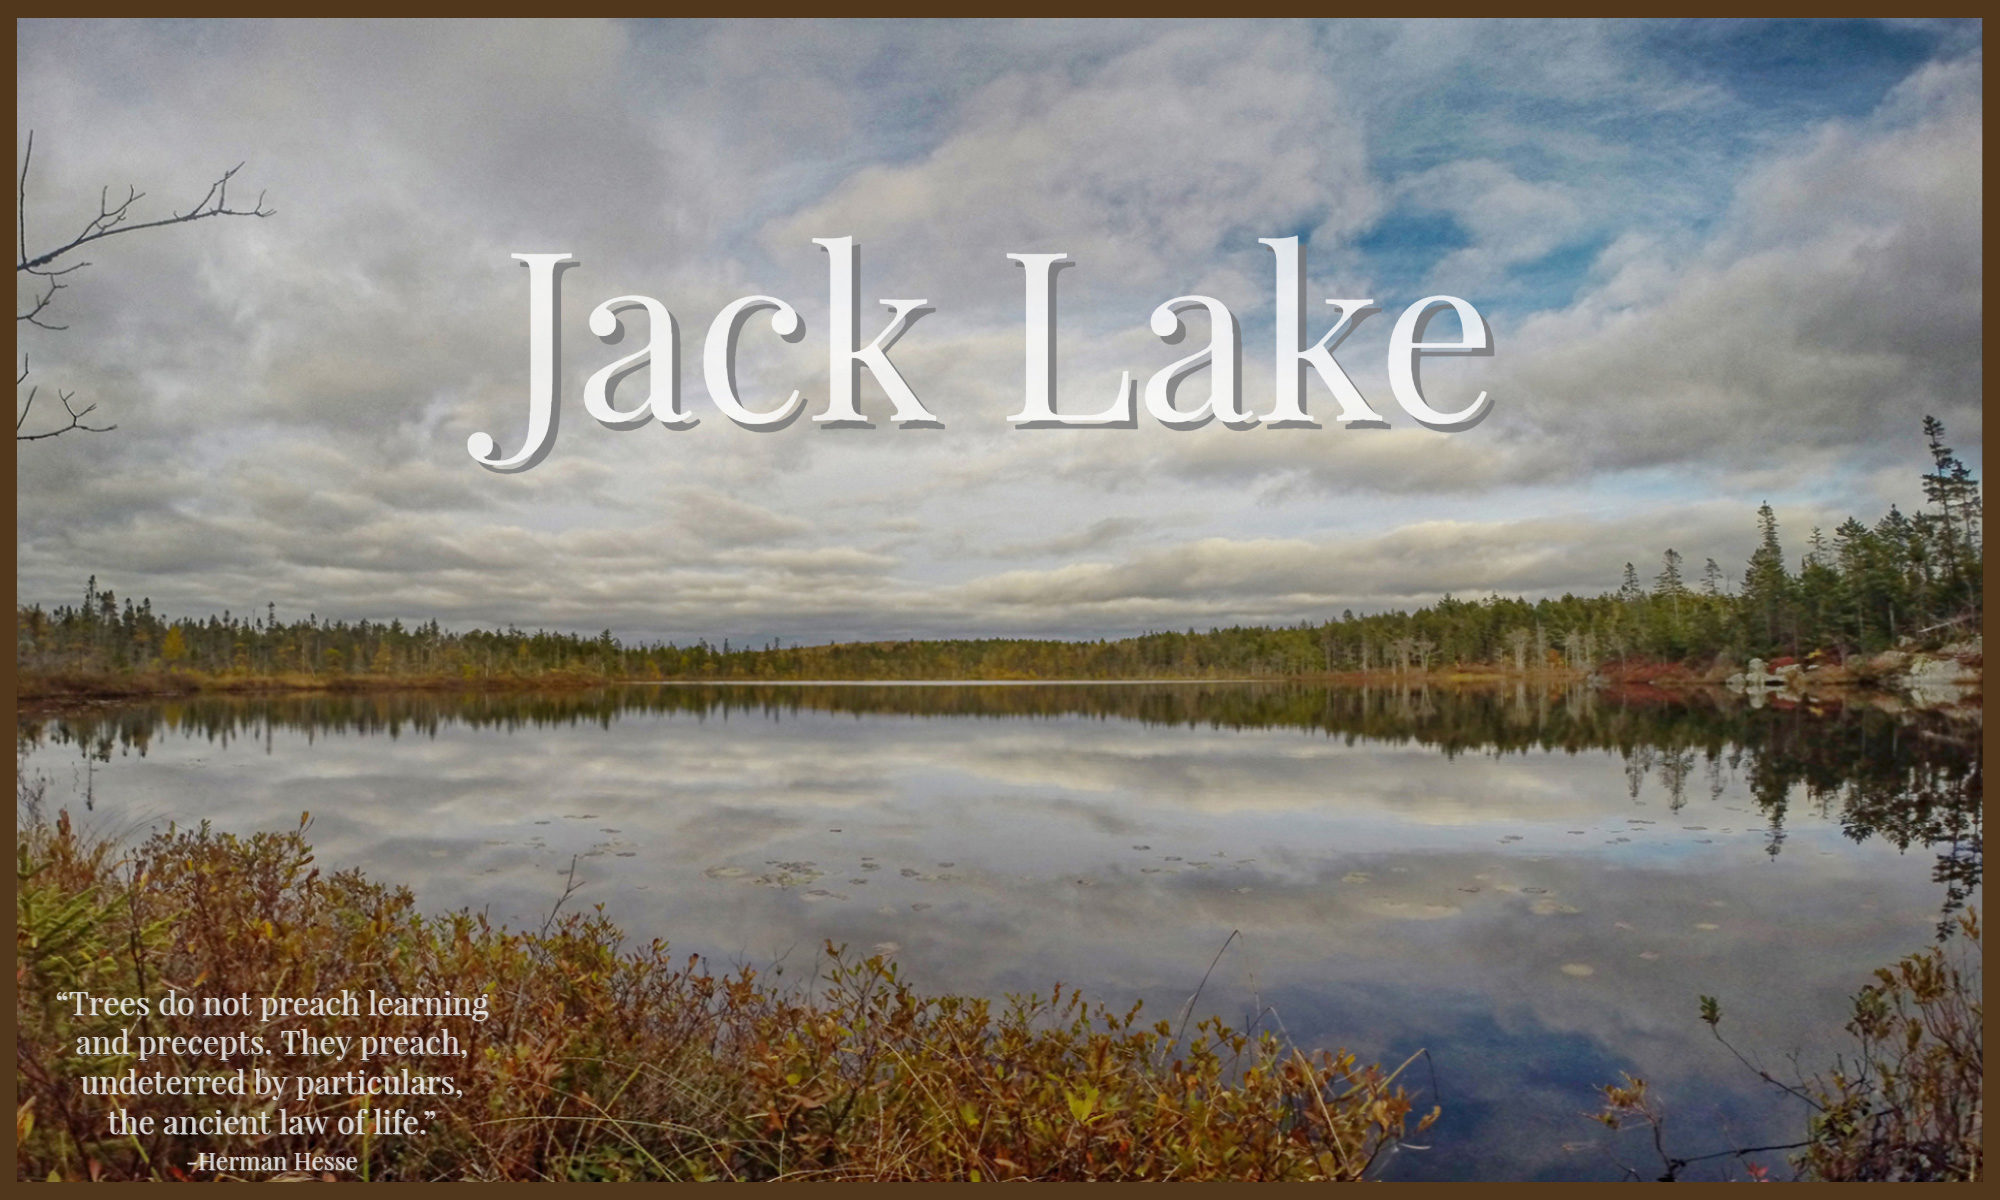 Jack Lake Hiking Trail Bedford - Halifax, Nova Scotia